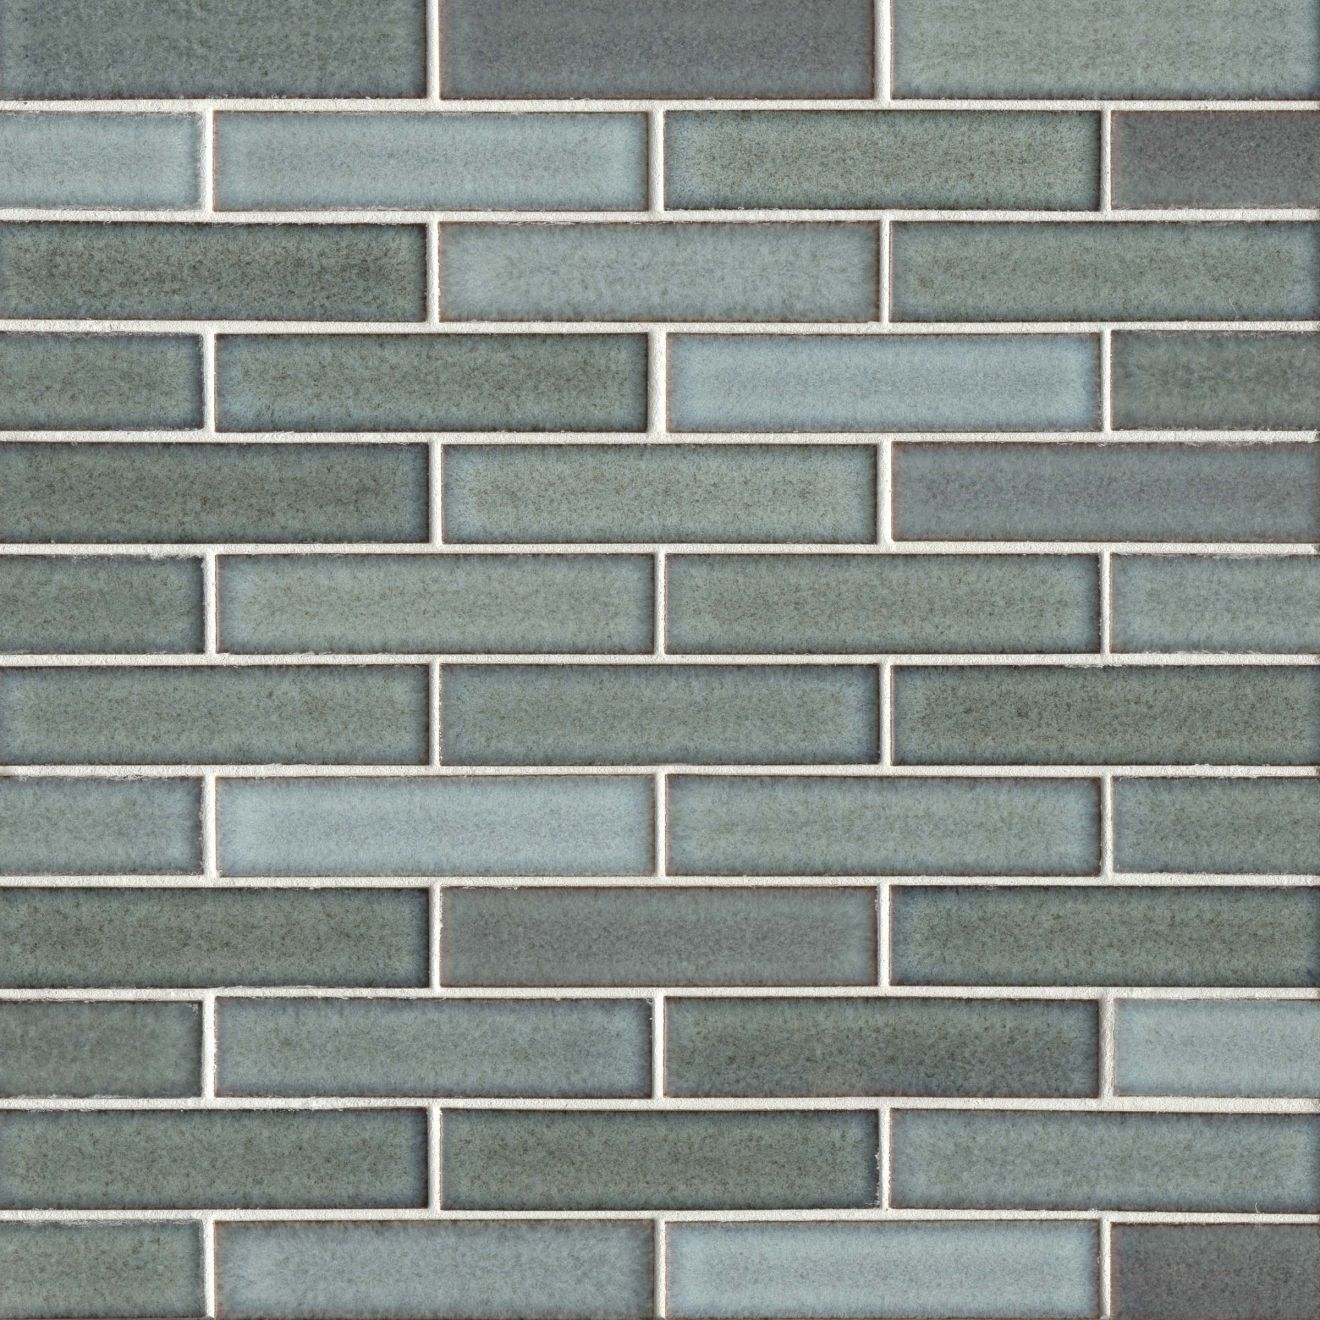 "Seni 1"" x 4"" Floor & Wall Mosaic in Teal"